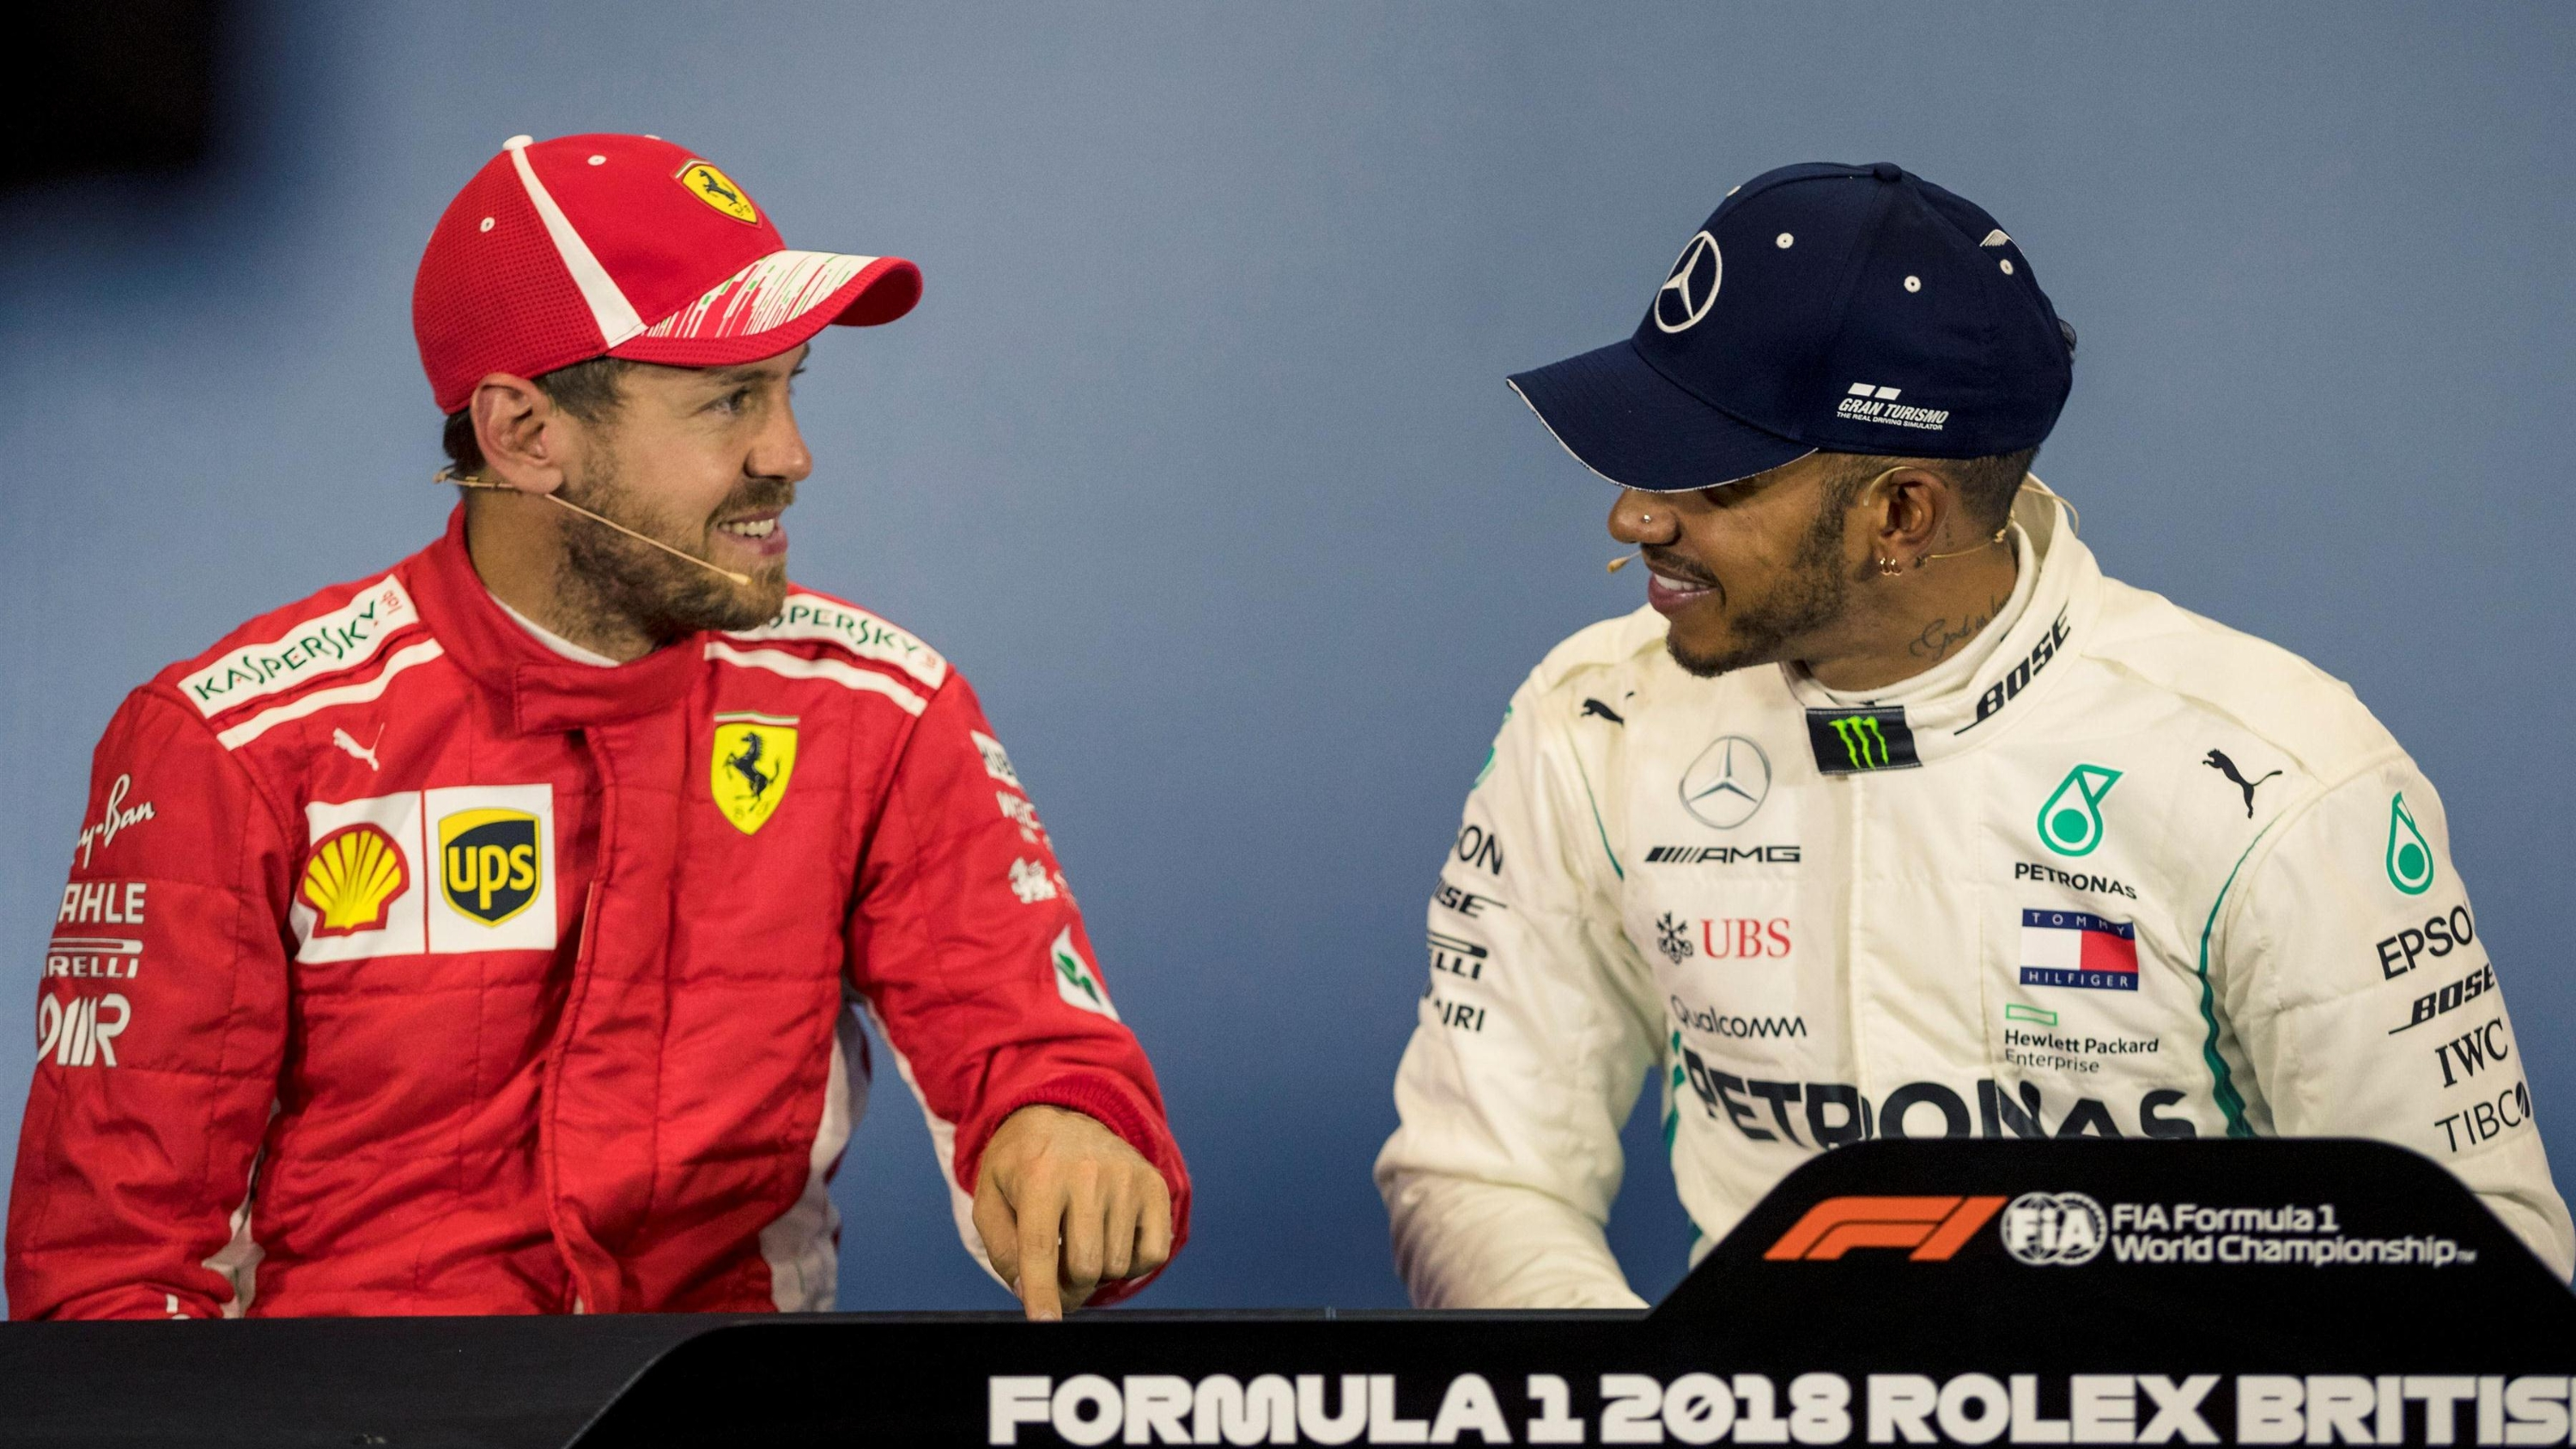 Vettel overcomes pain to hold off Hamilton